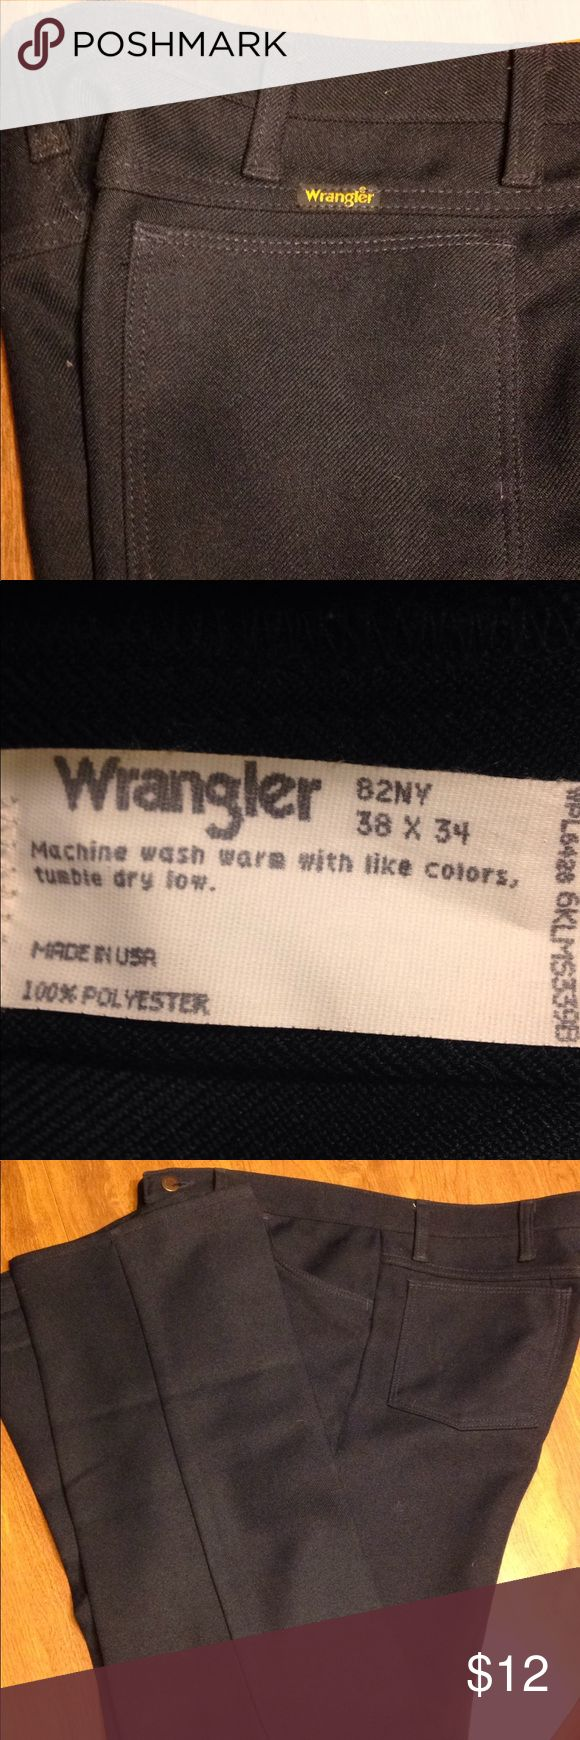 Wrangler black pants 38x34  100% polyester Old school   Appear to never have been worn Wrangler Pants Dress